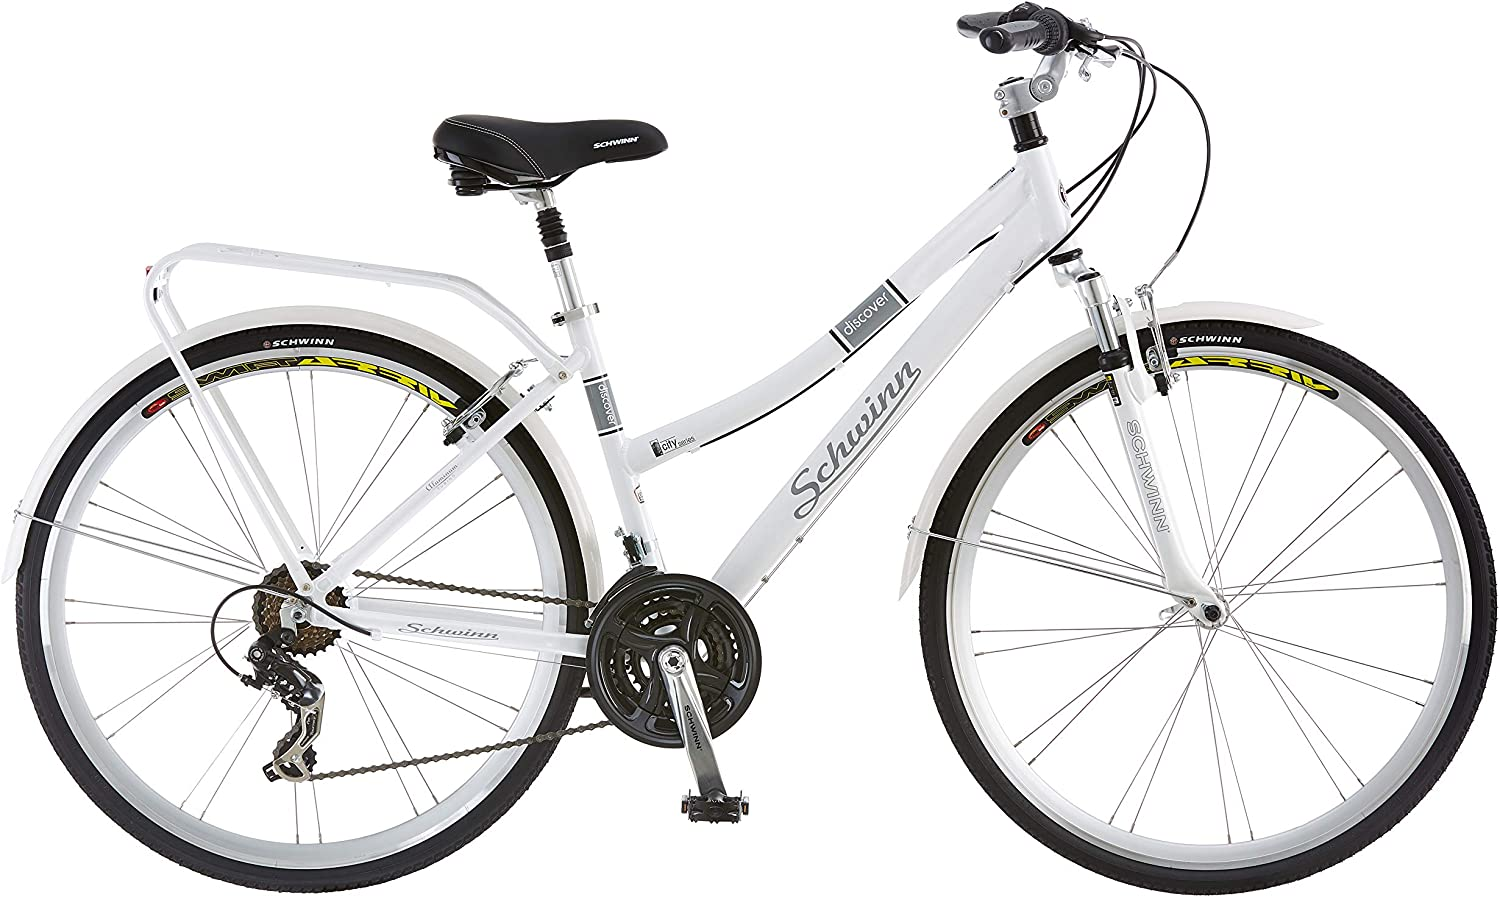 Schwinn Discover Hybrid Bike for 50 to 60 years old woman